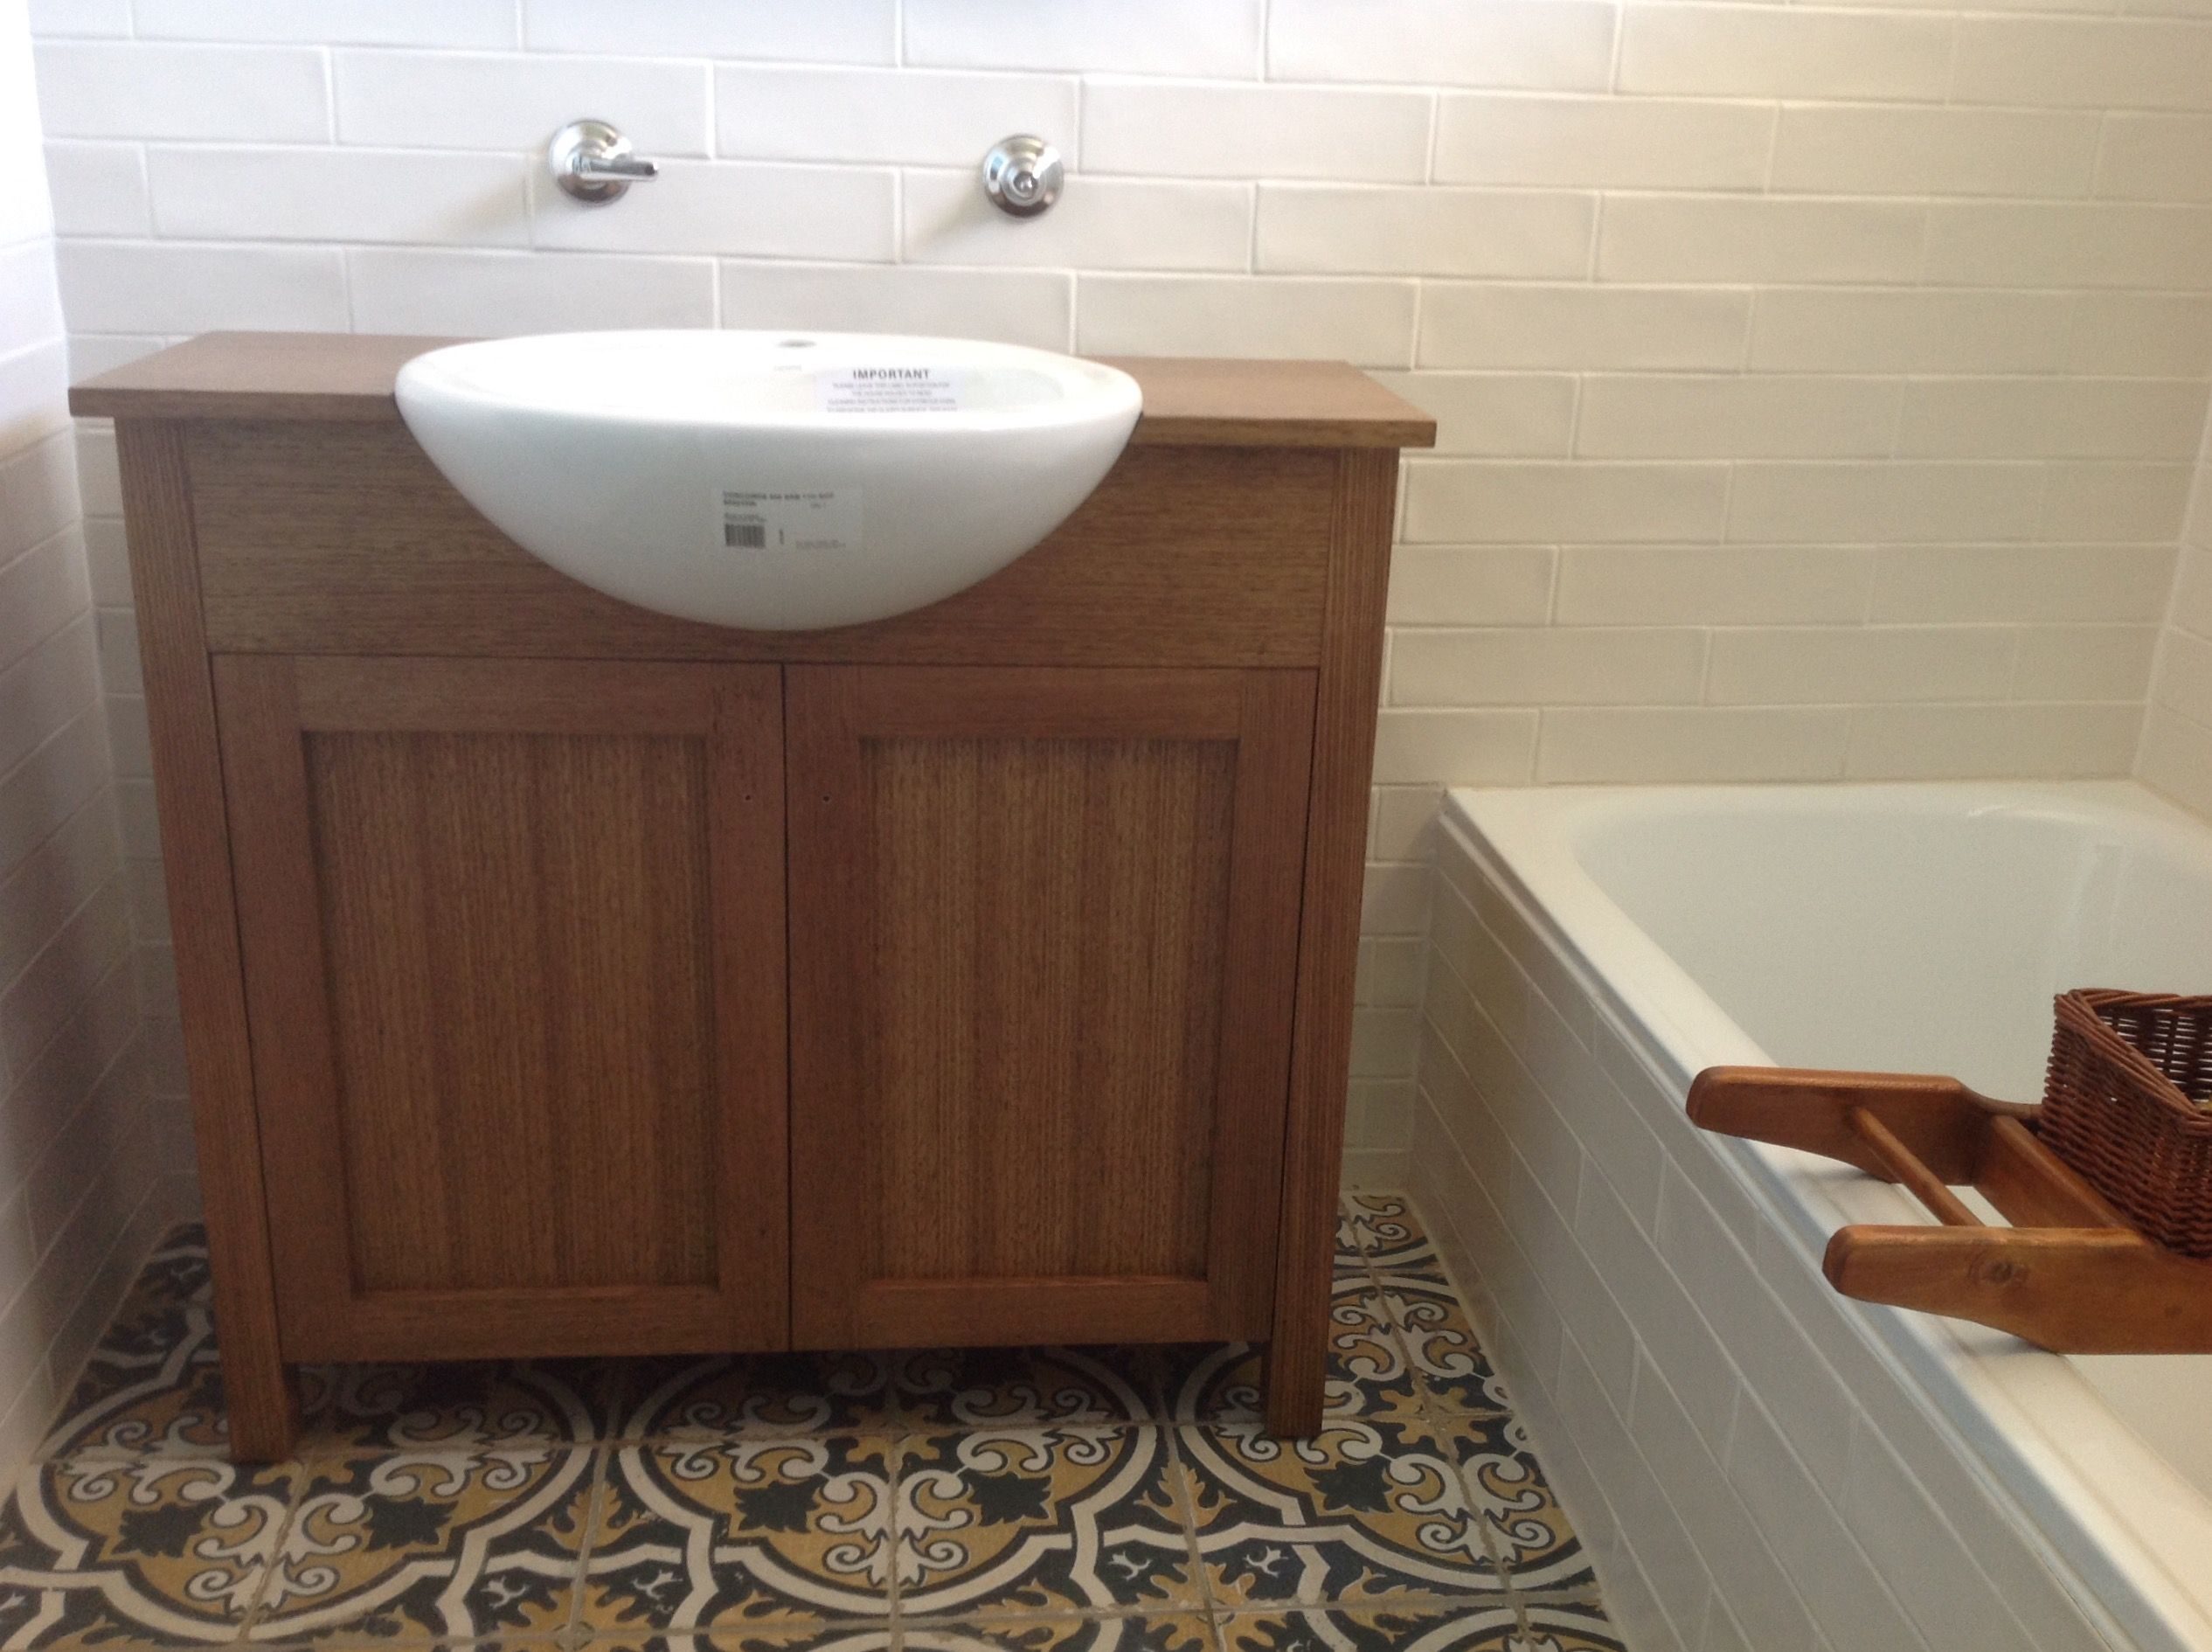 Solid timber custom built vanity cabinet for small bathroom in